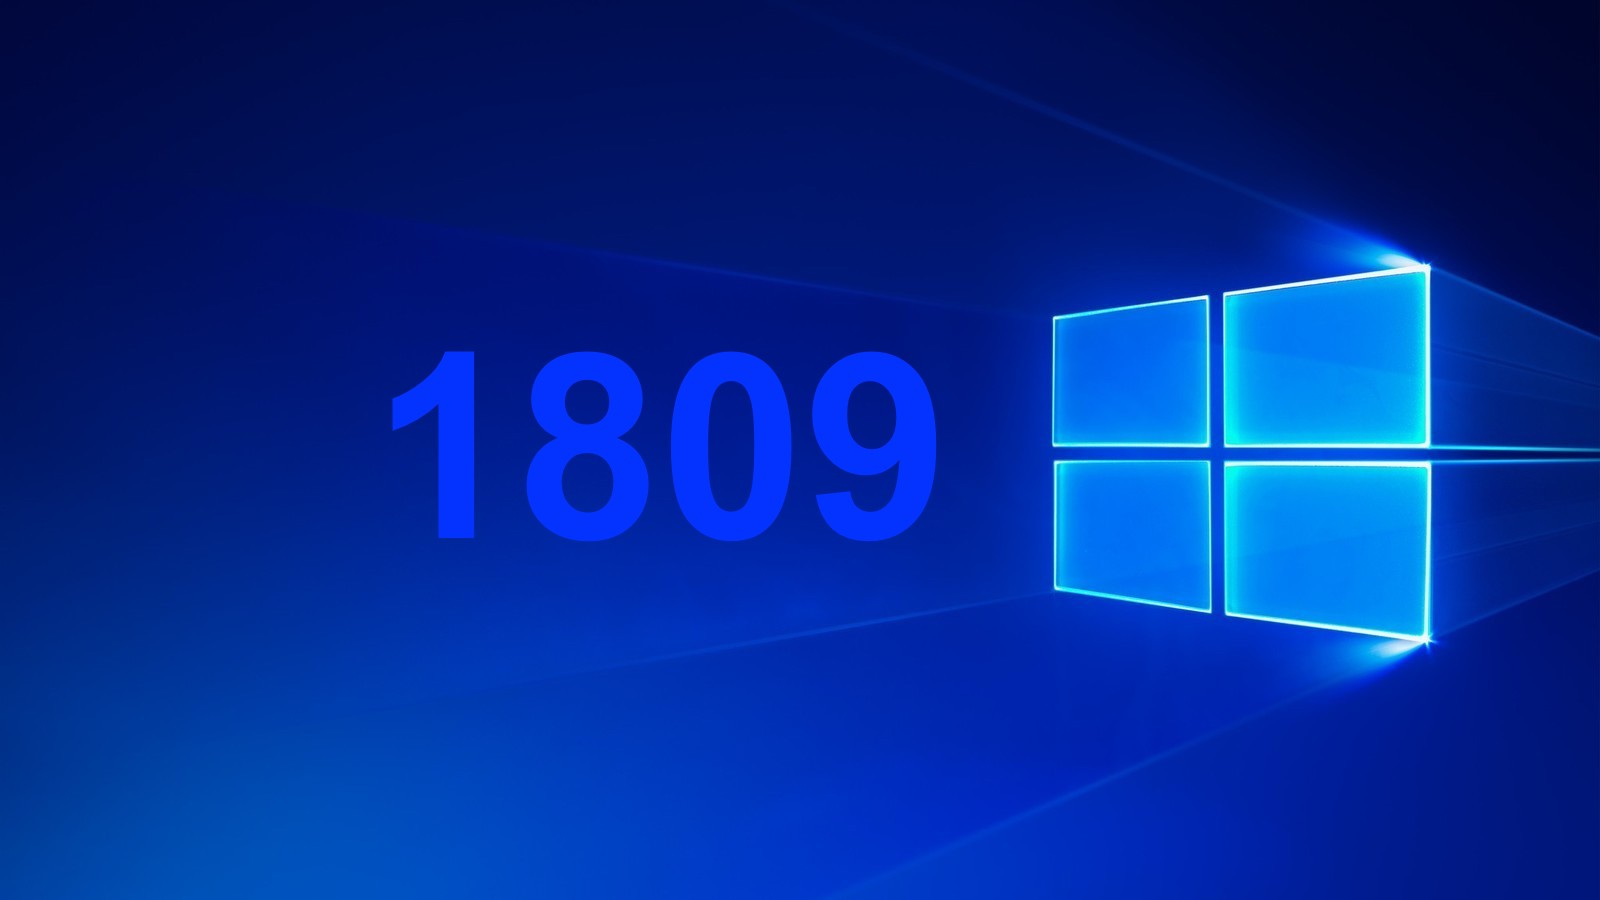 More Updates to Install: Windows 10 1809 Gets Some Bugs Fixed